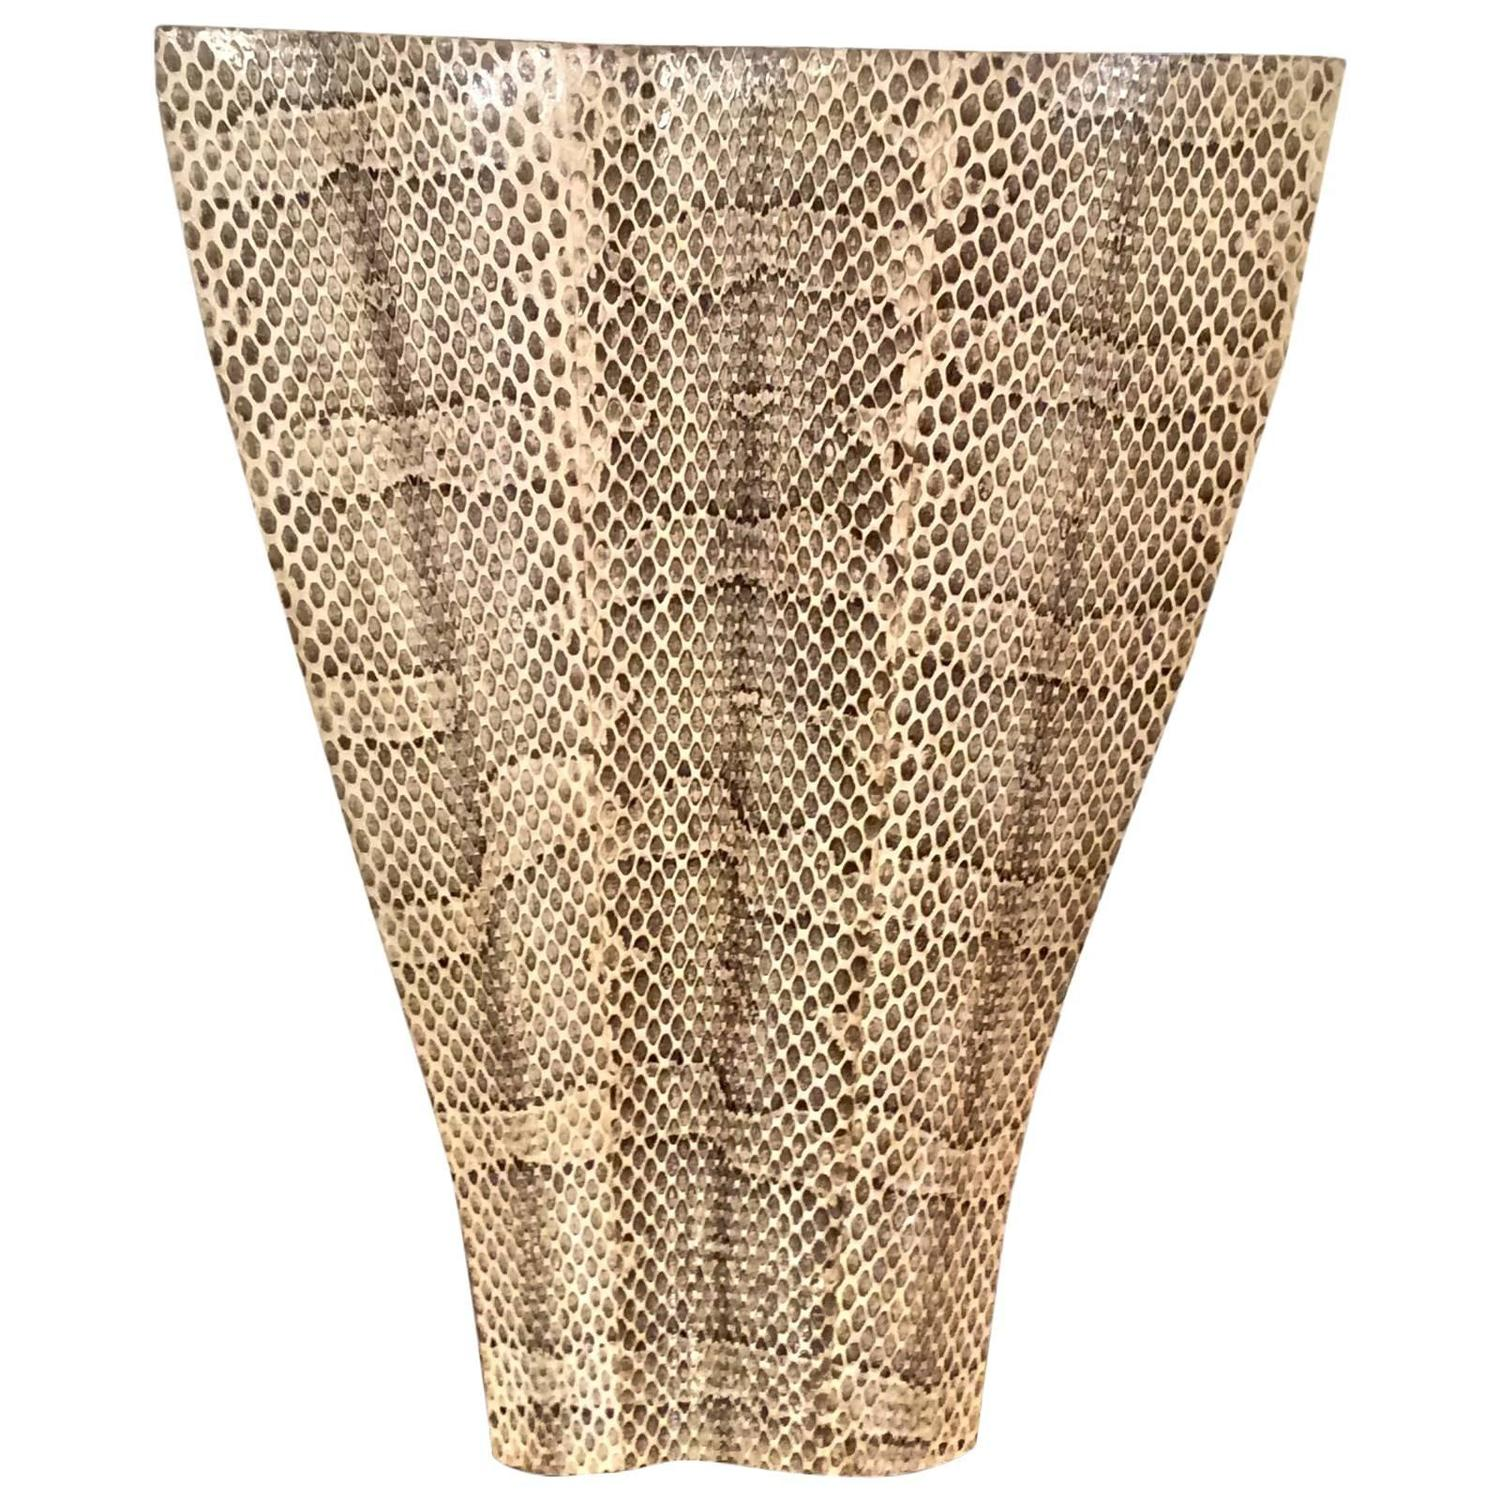 Sculptural snakeskin vase by r and y augousti for sale at 1stdibs reviewsmspy